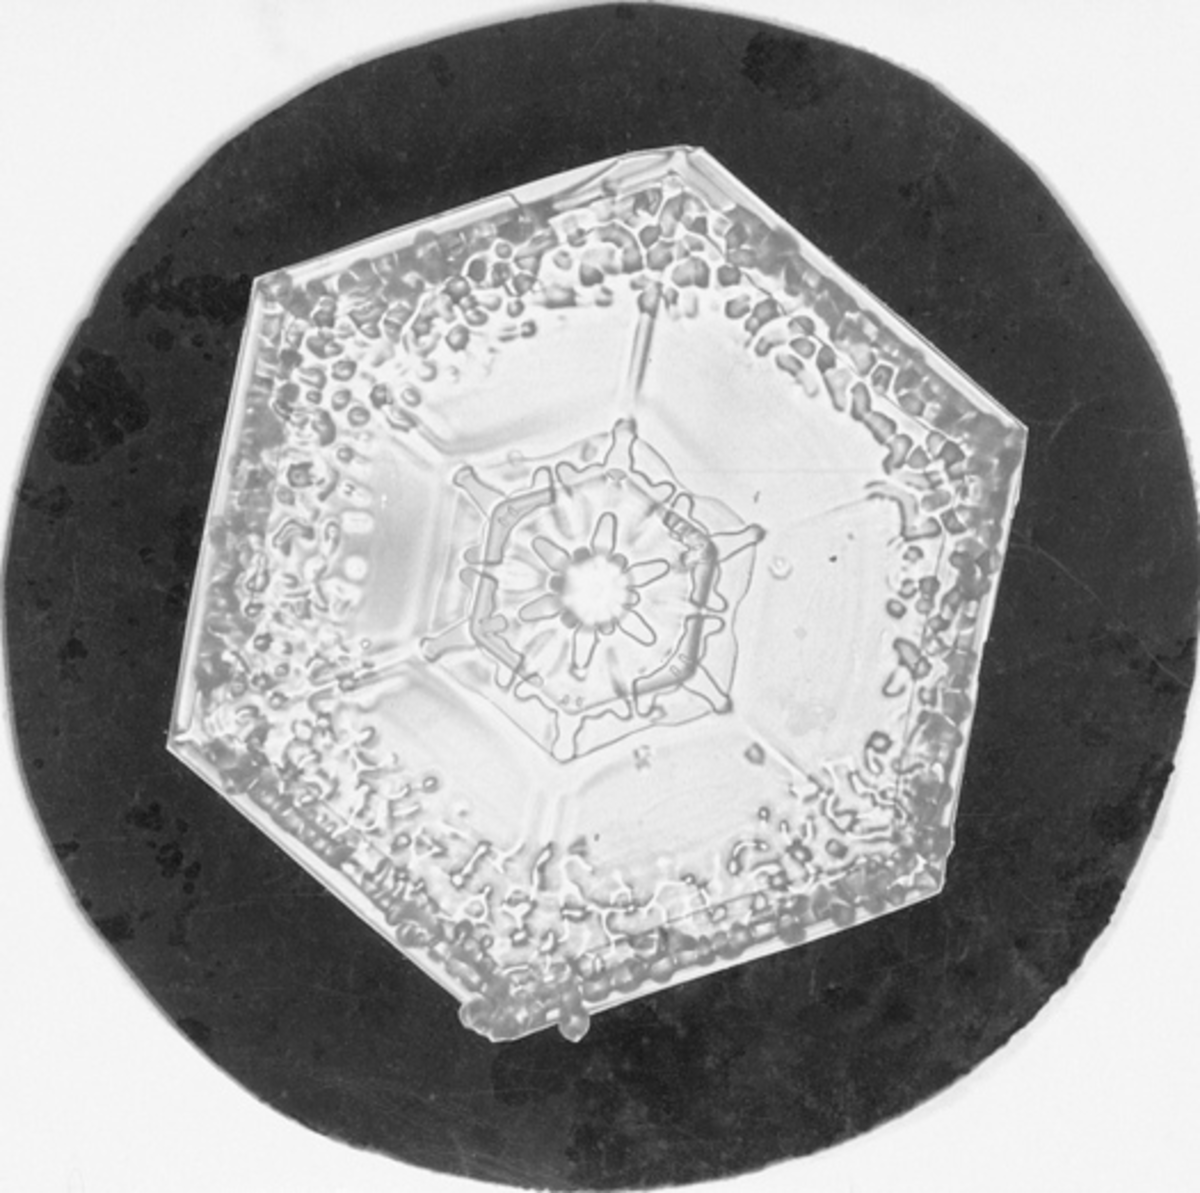 A hexagonal plate. 6 sided with a flat appearance.